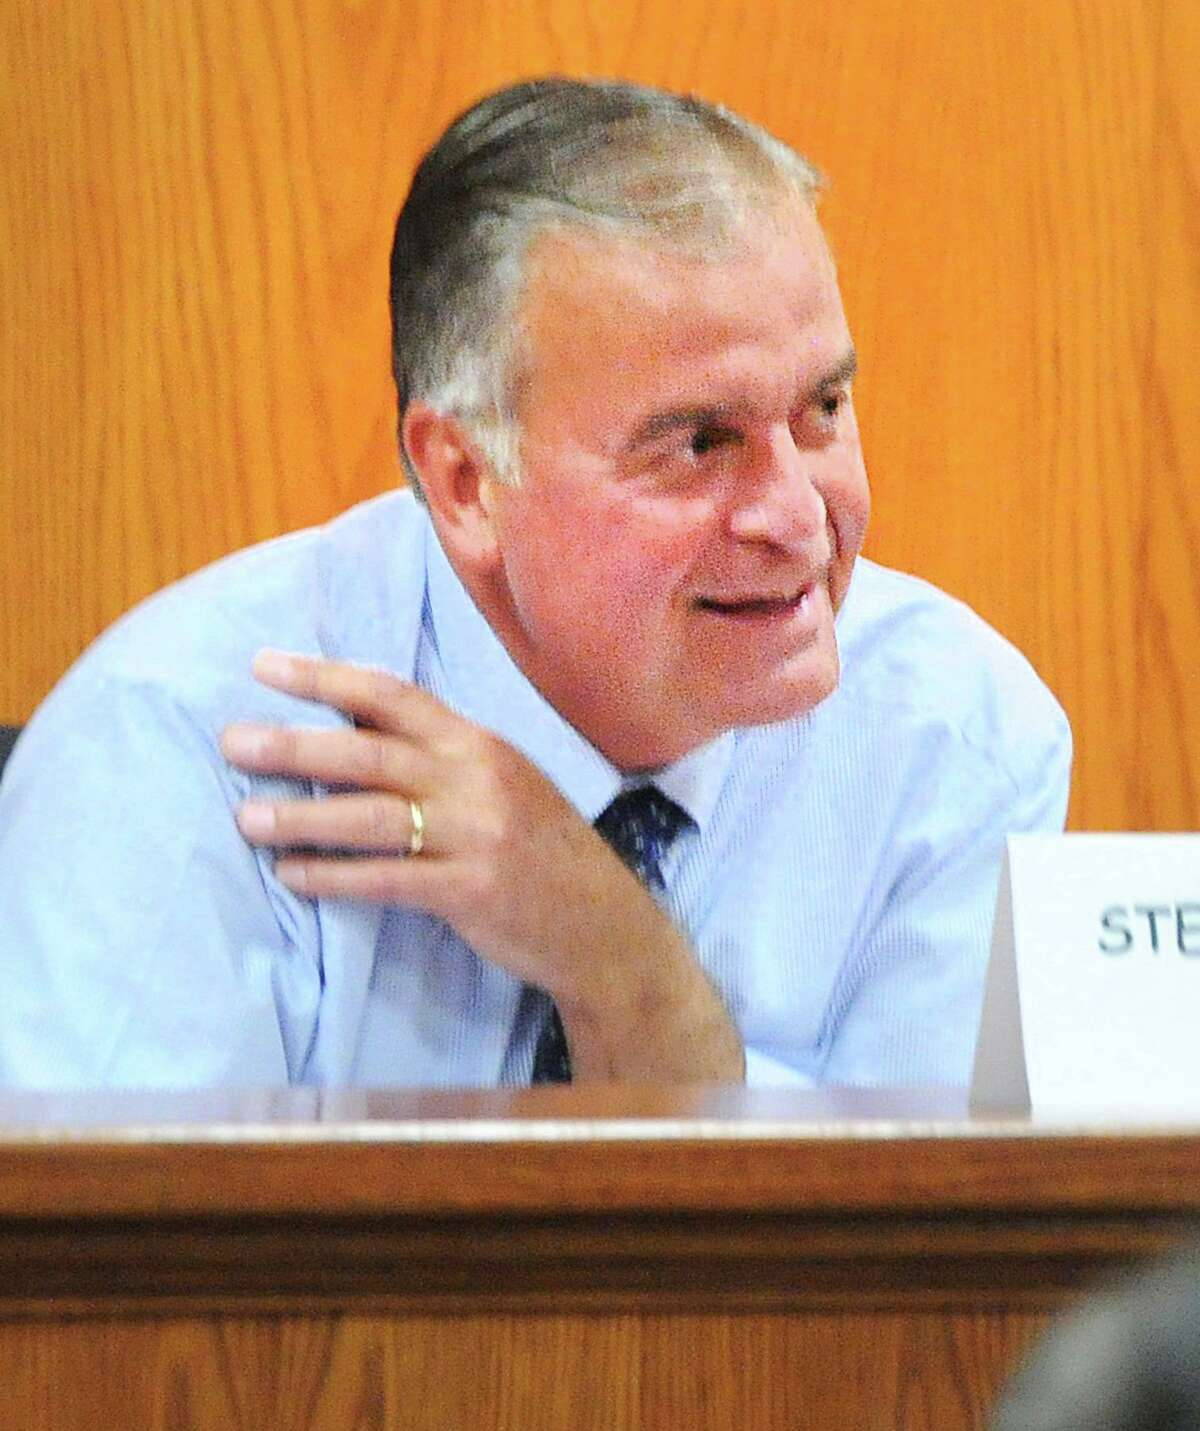 Stephen Meskers the Democratic candidate for the State Representative 150 District seat during the League of Women Voters of Greenwich State Representatives Debate for the 150th and 151st District at Greenwich Town Hall, Conn., Wednesday, Oct. 10, 2018. Meskers debated incumbent State Representative Michael Bocchino (R-150).